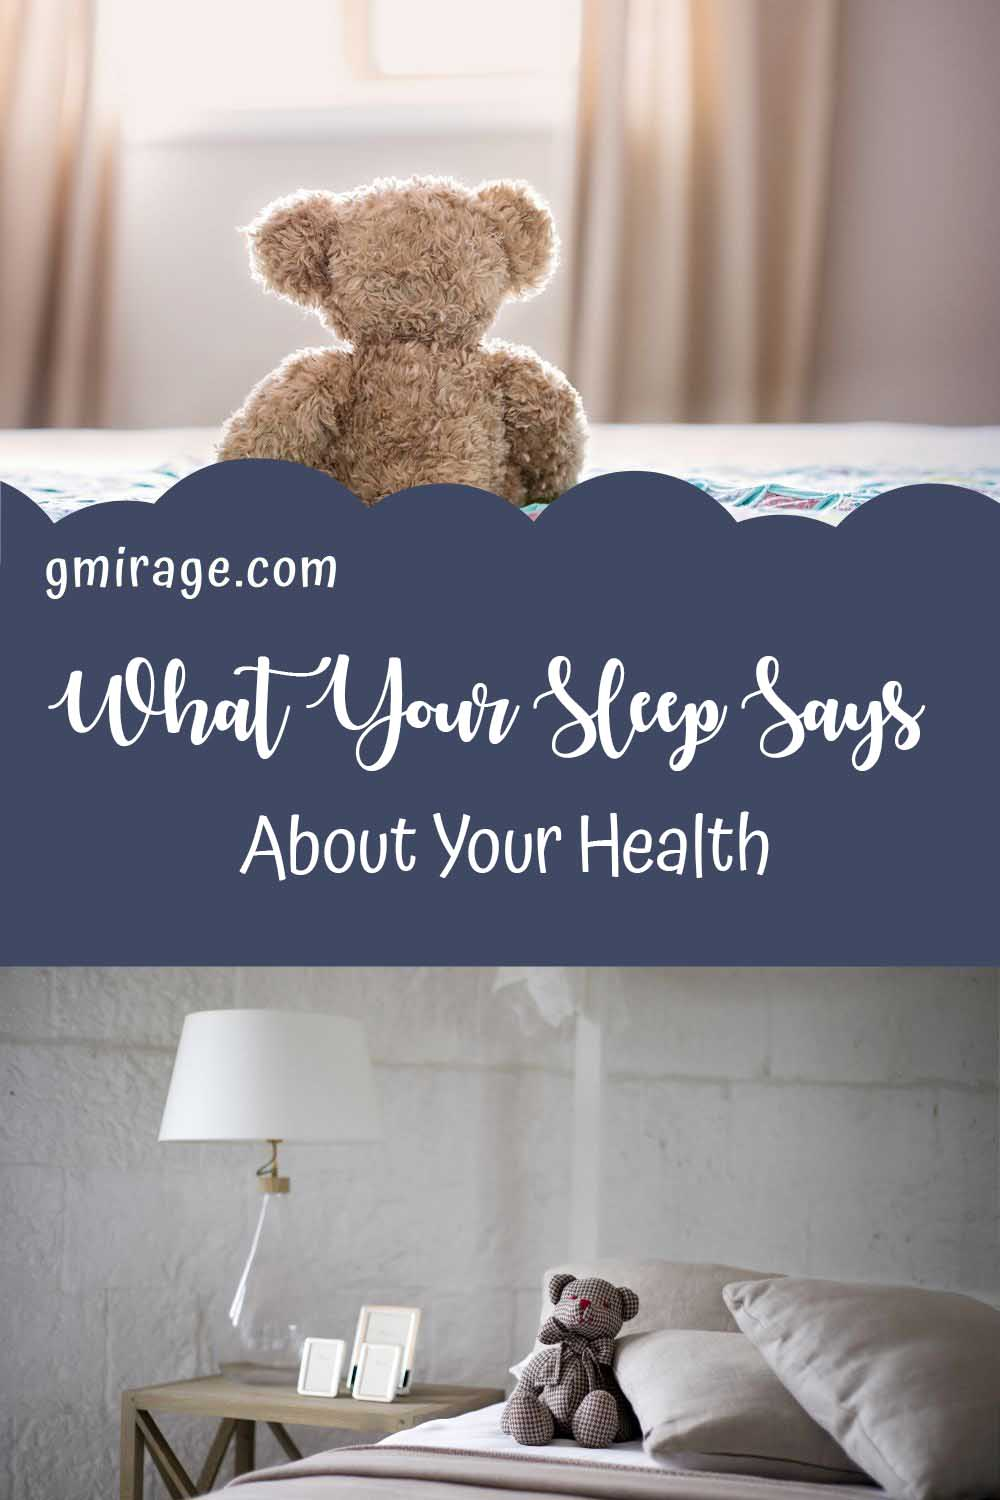 What Your Sleep Says About Your Health, bear bed